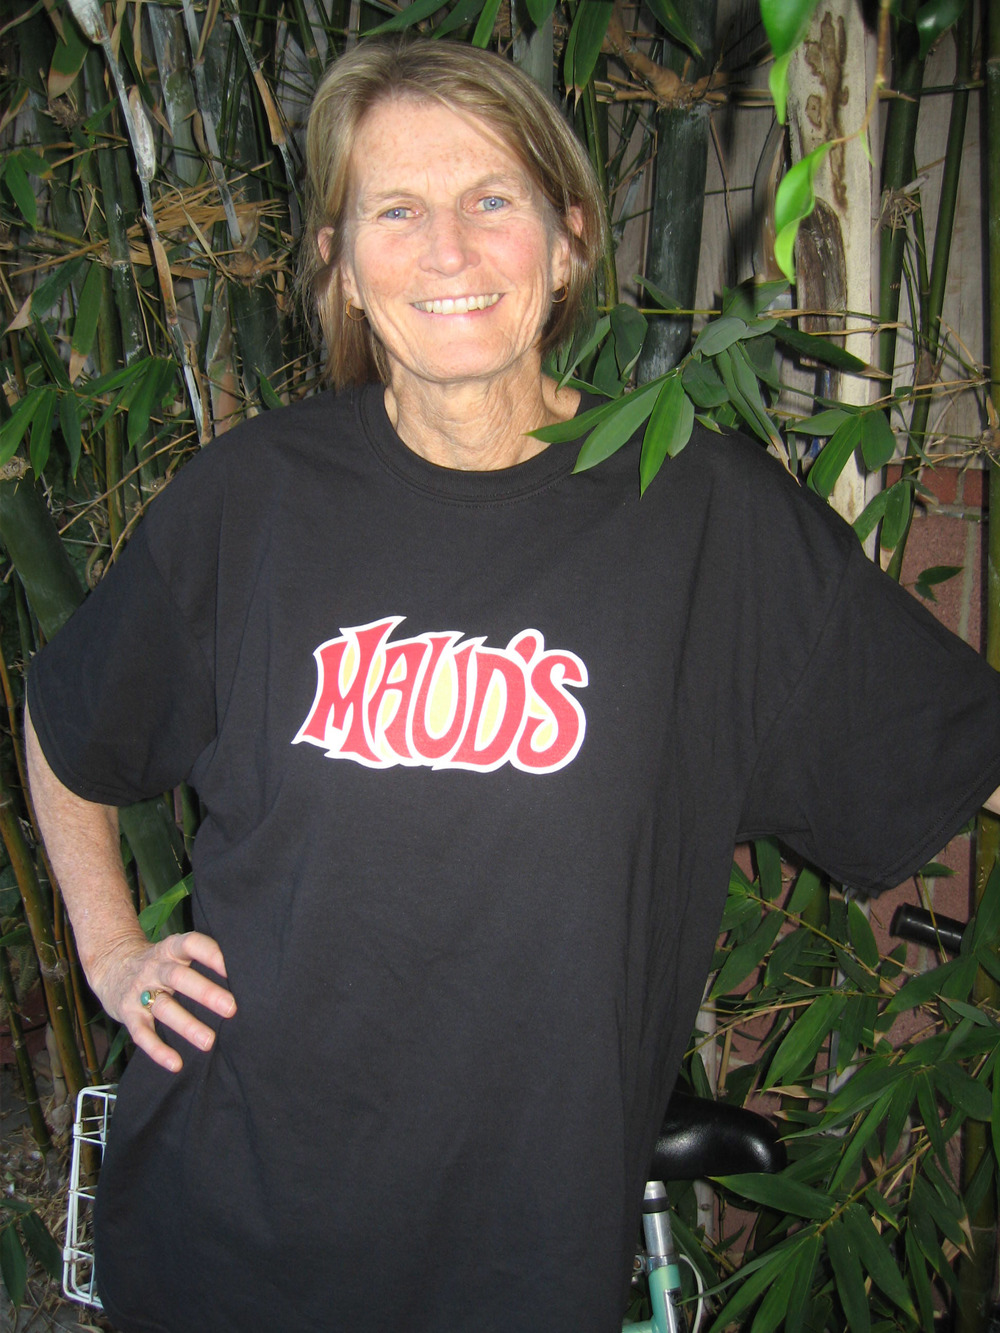 Midge looks marvelous in her MEDIUM tee.